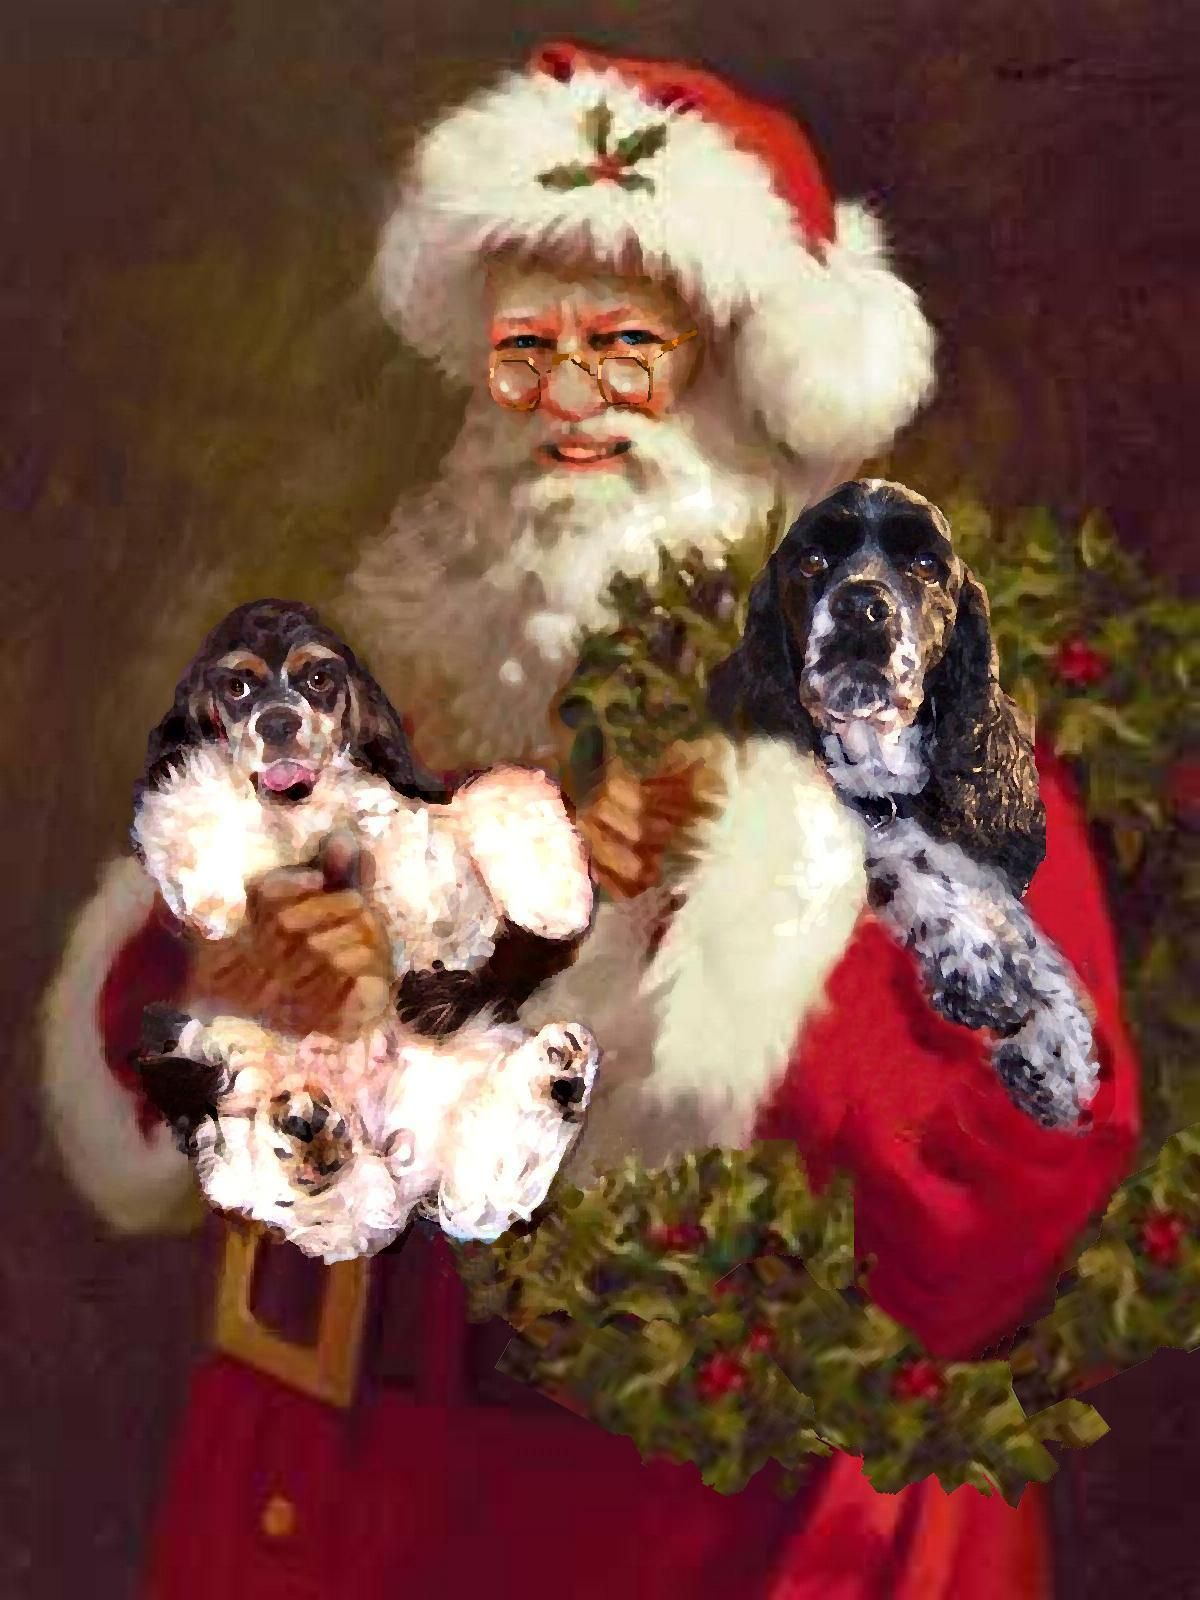 That's my Santa with Mikey puppy and Jake at 3.